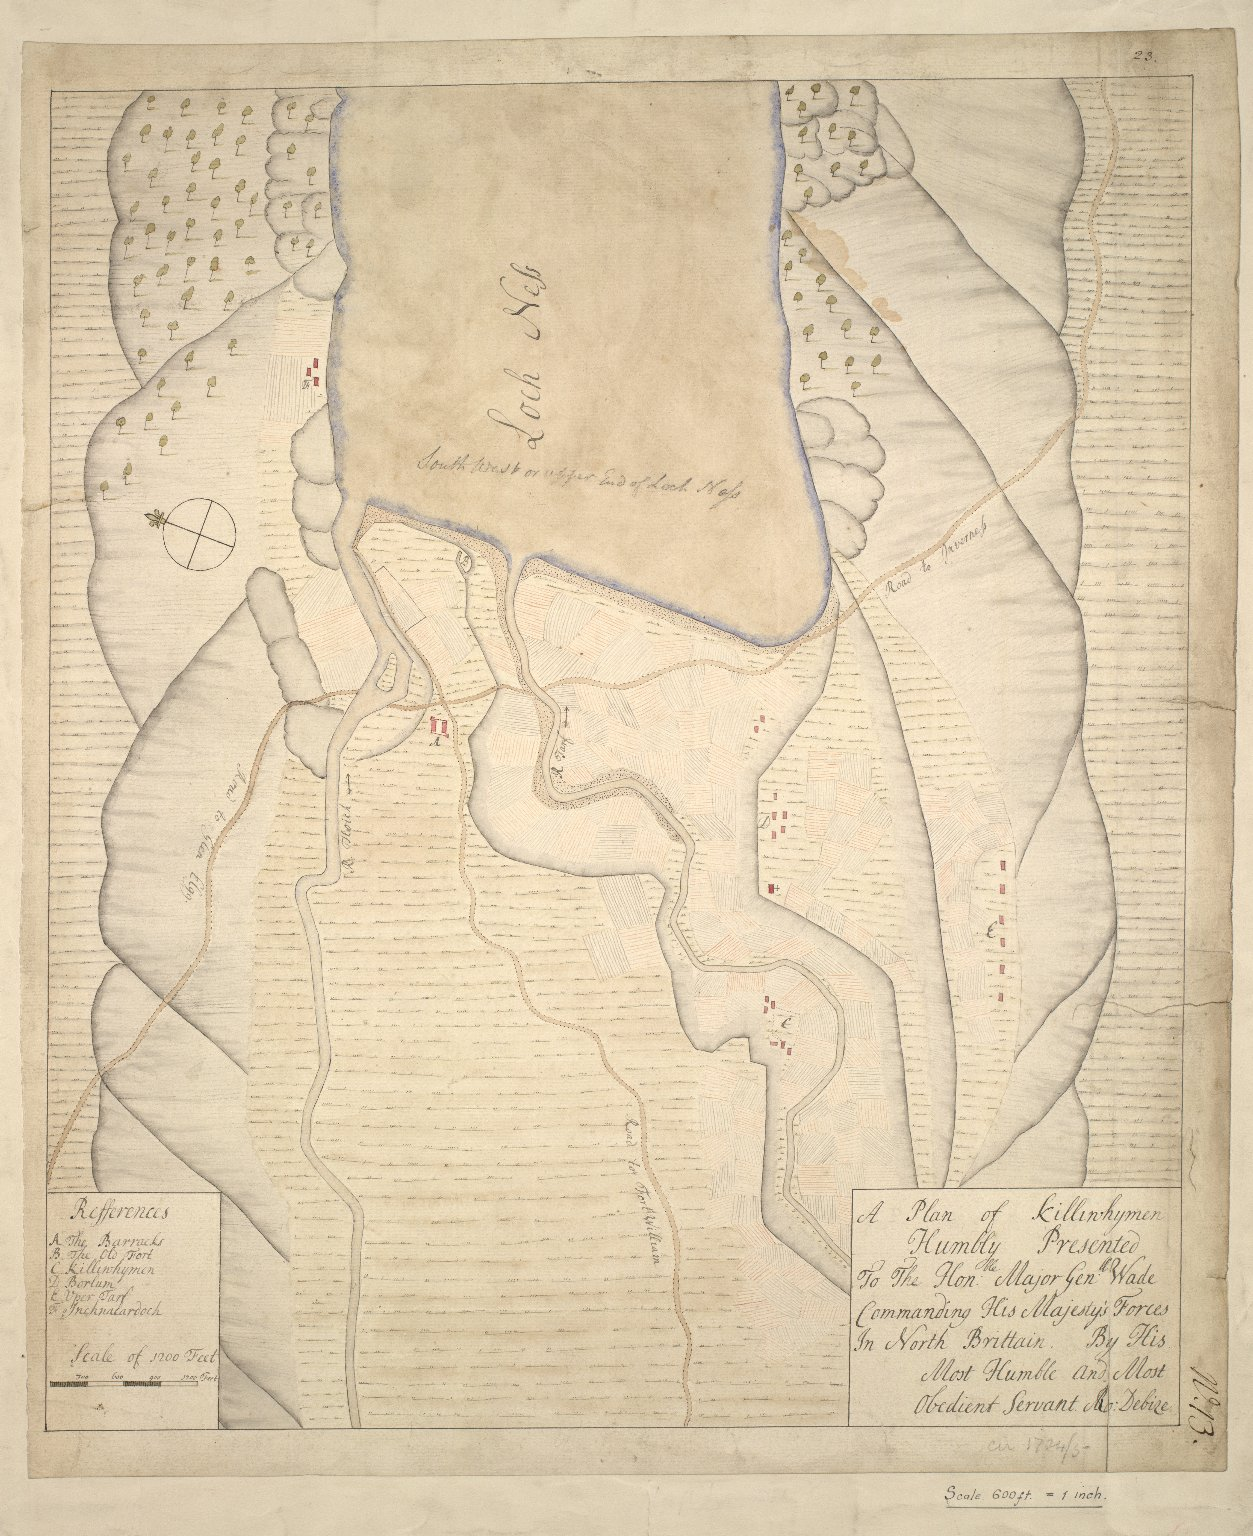 A Plan of Killiwhymen humbly presented to the Hon. Major Gen. Wade Commanding His Majesty's Forces in North Brittain [1 of 1]